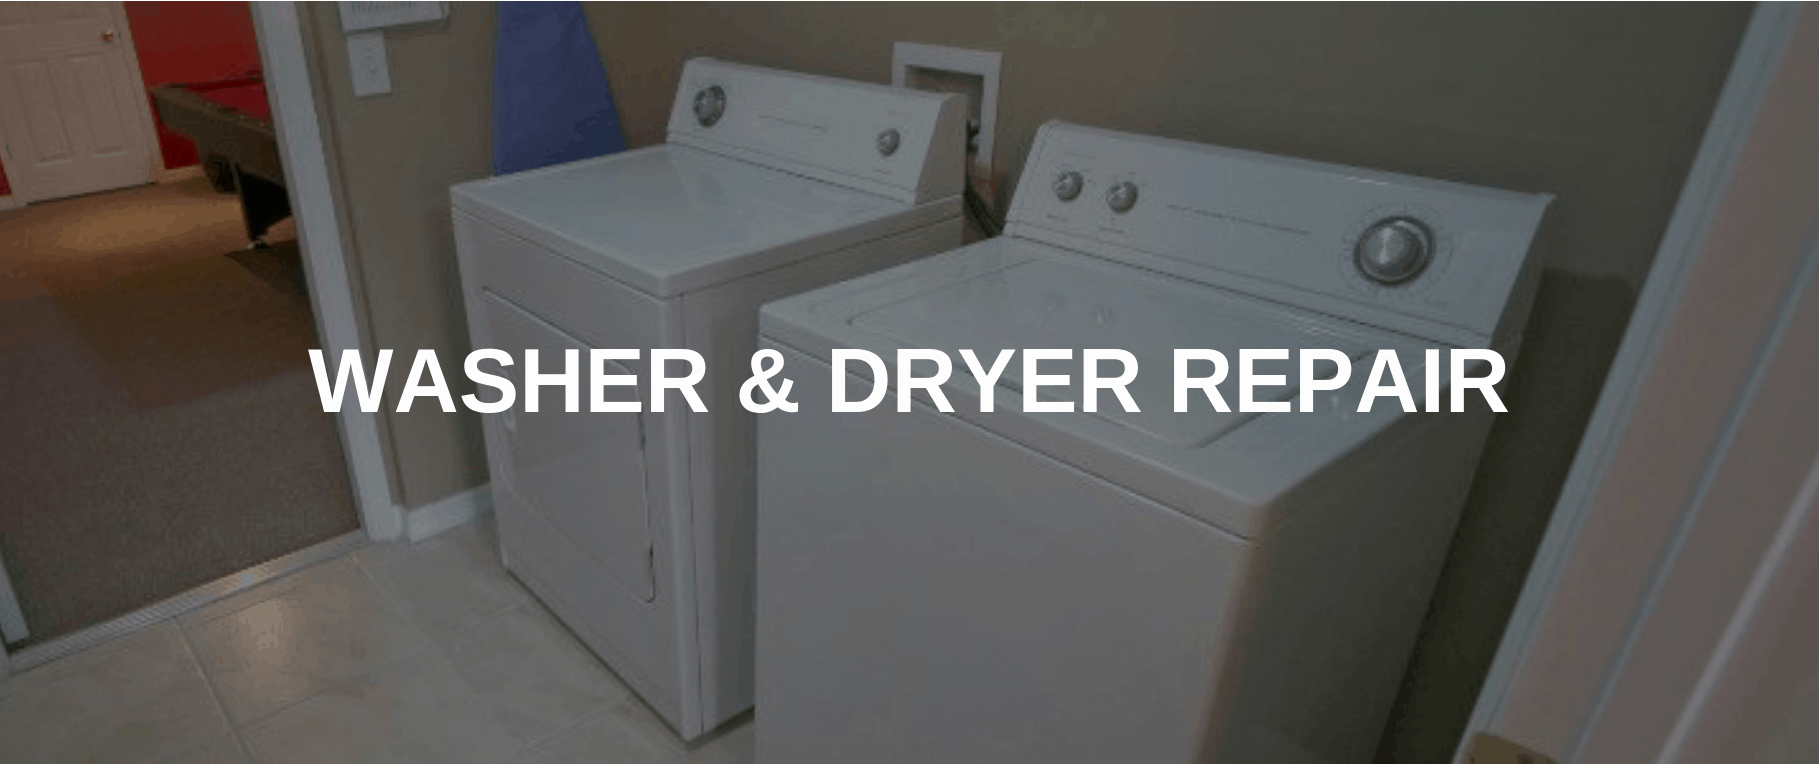 washing machine repair miramar